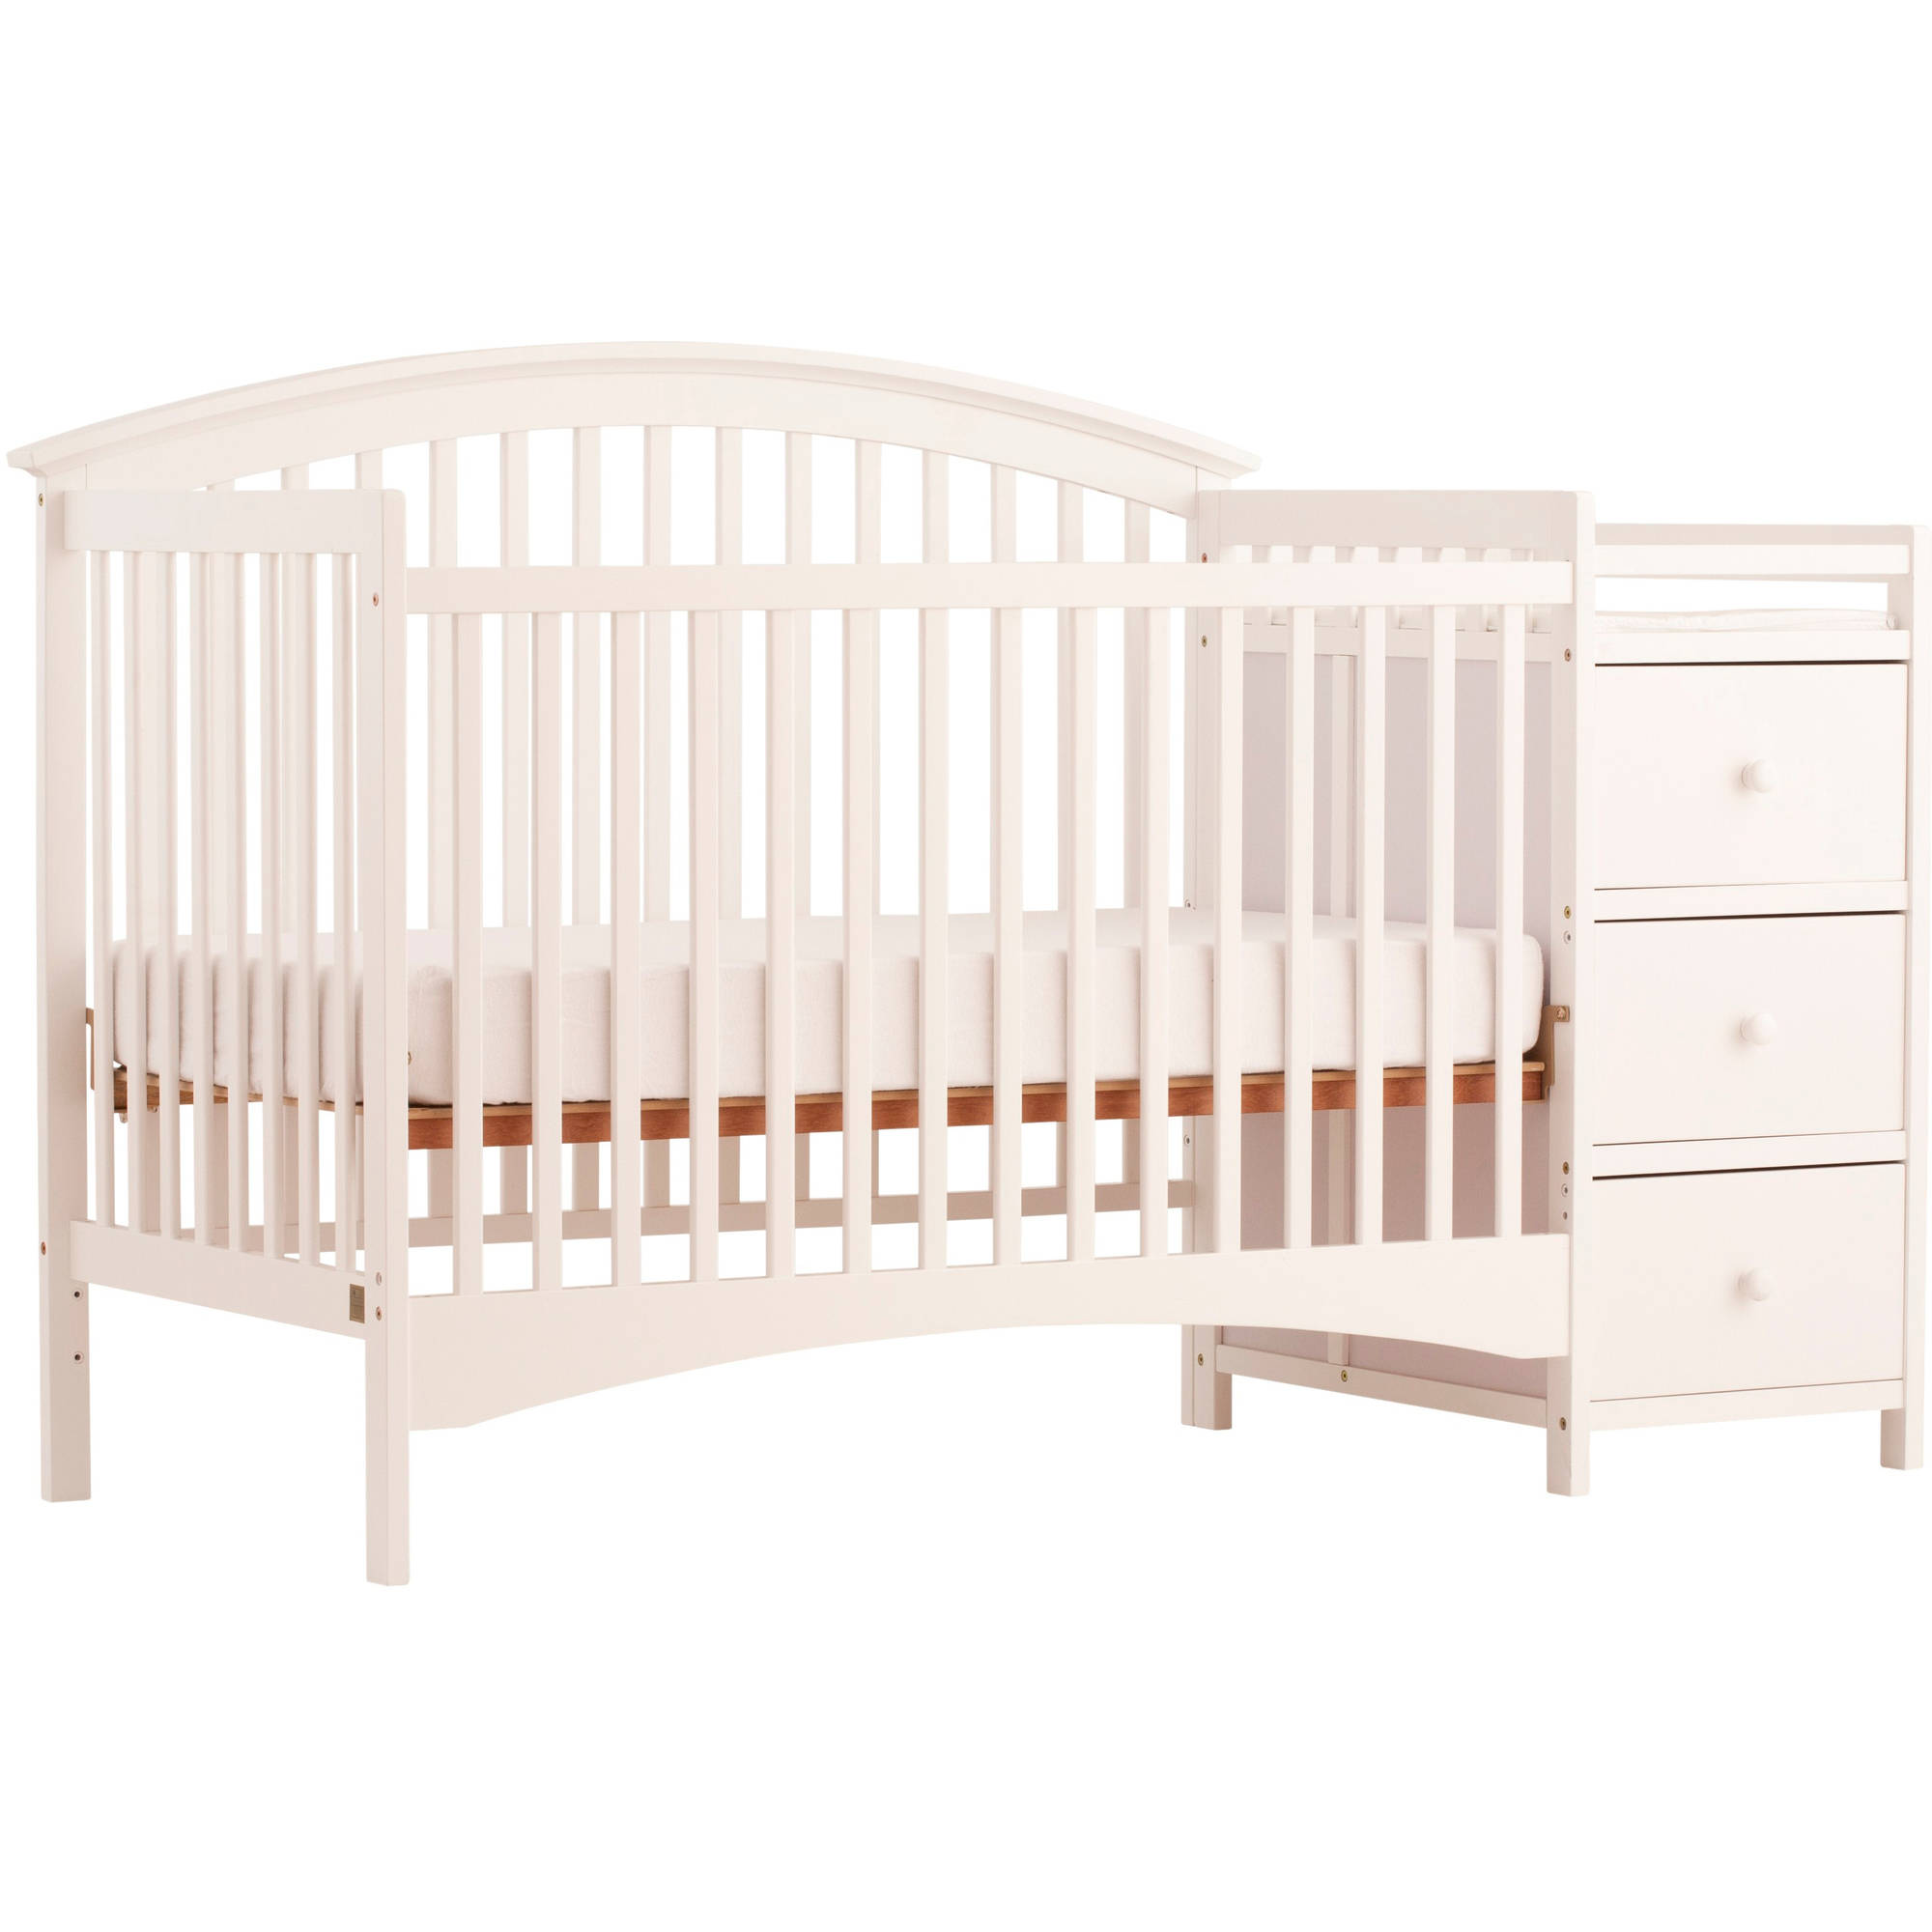 Storkcraft Bradford 4 in 1 Convertible Crib and Changing Table